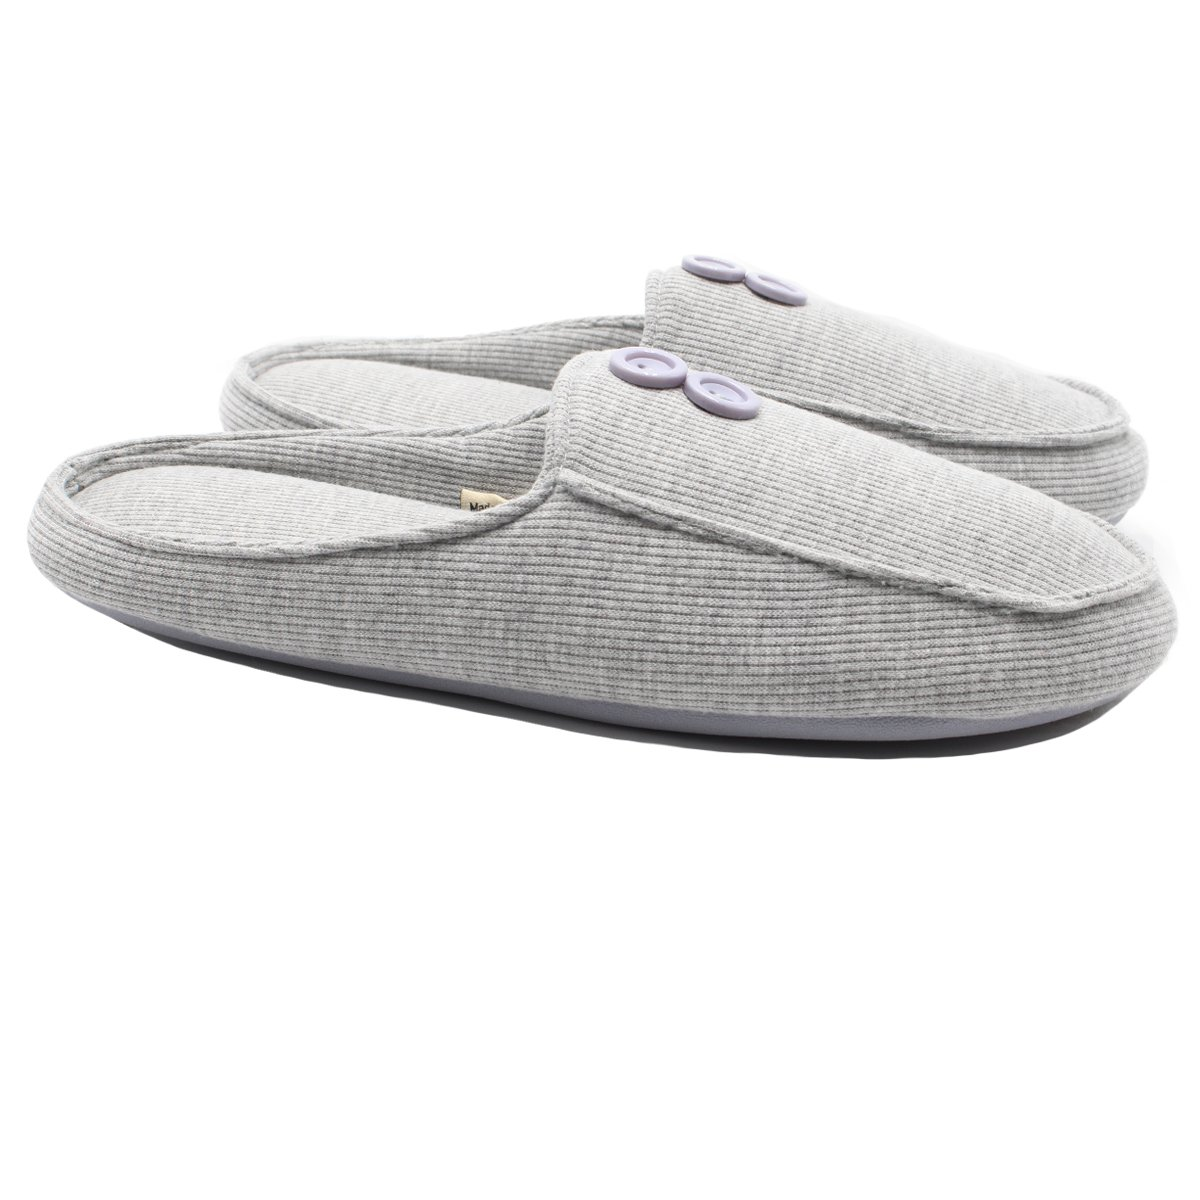 Ofoot Women's Memory Foam Indoor Slippers,Organic Cotton Closed Toe,Anti-Slip TPR Sole with Buttons(9-10 B(M) US, Grey)